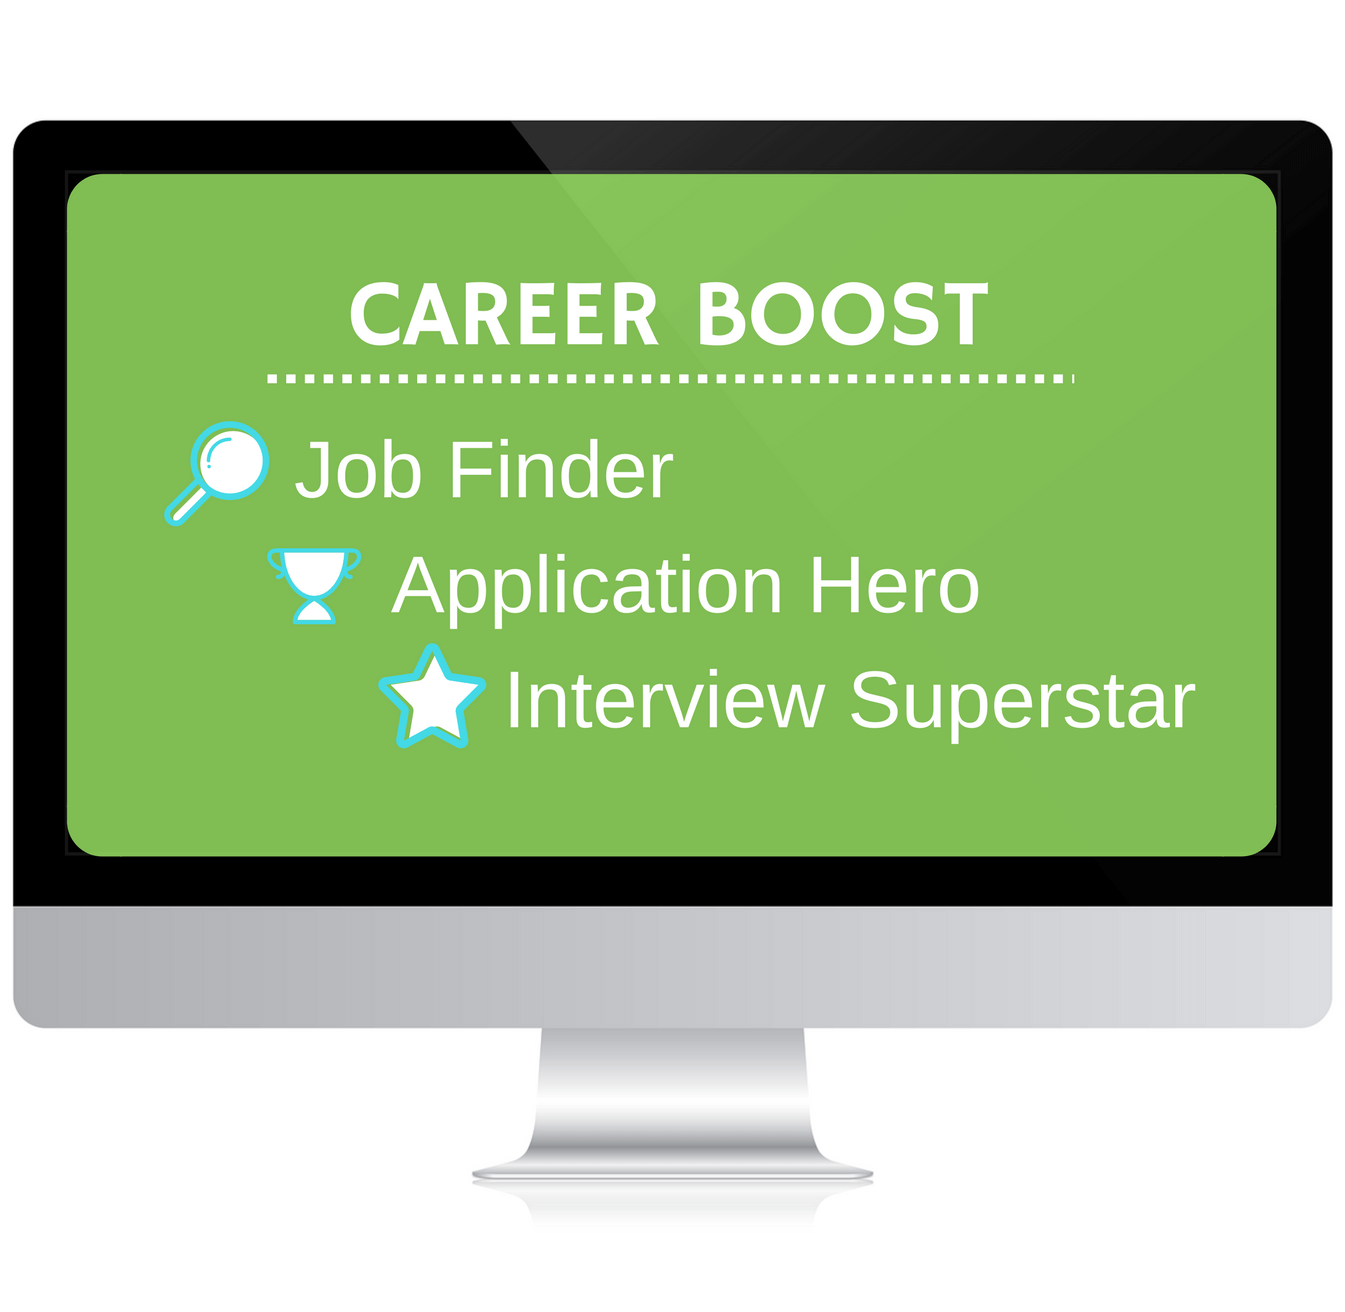 Find Your Dream Job and Boost Your Career